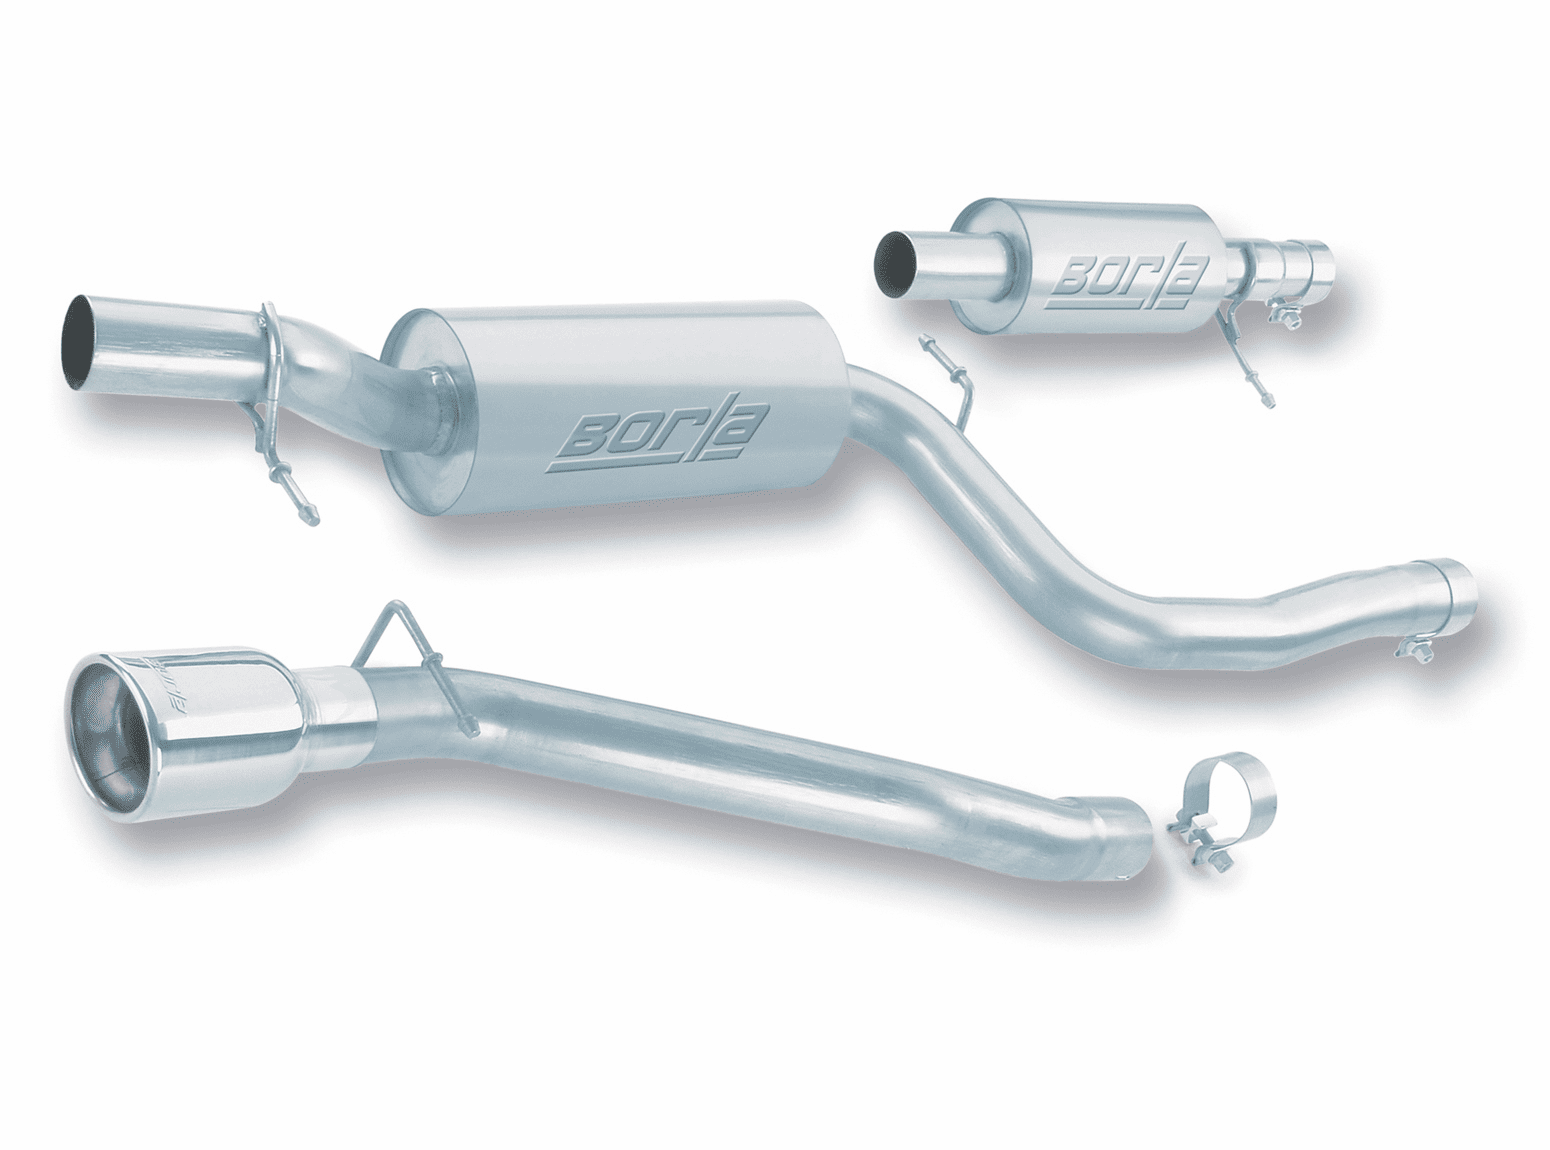 Borla Cat-Back Exhaust System Part # 140121 for the 2004 - 2007 Mazda 3